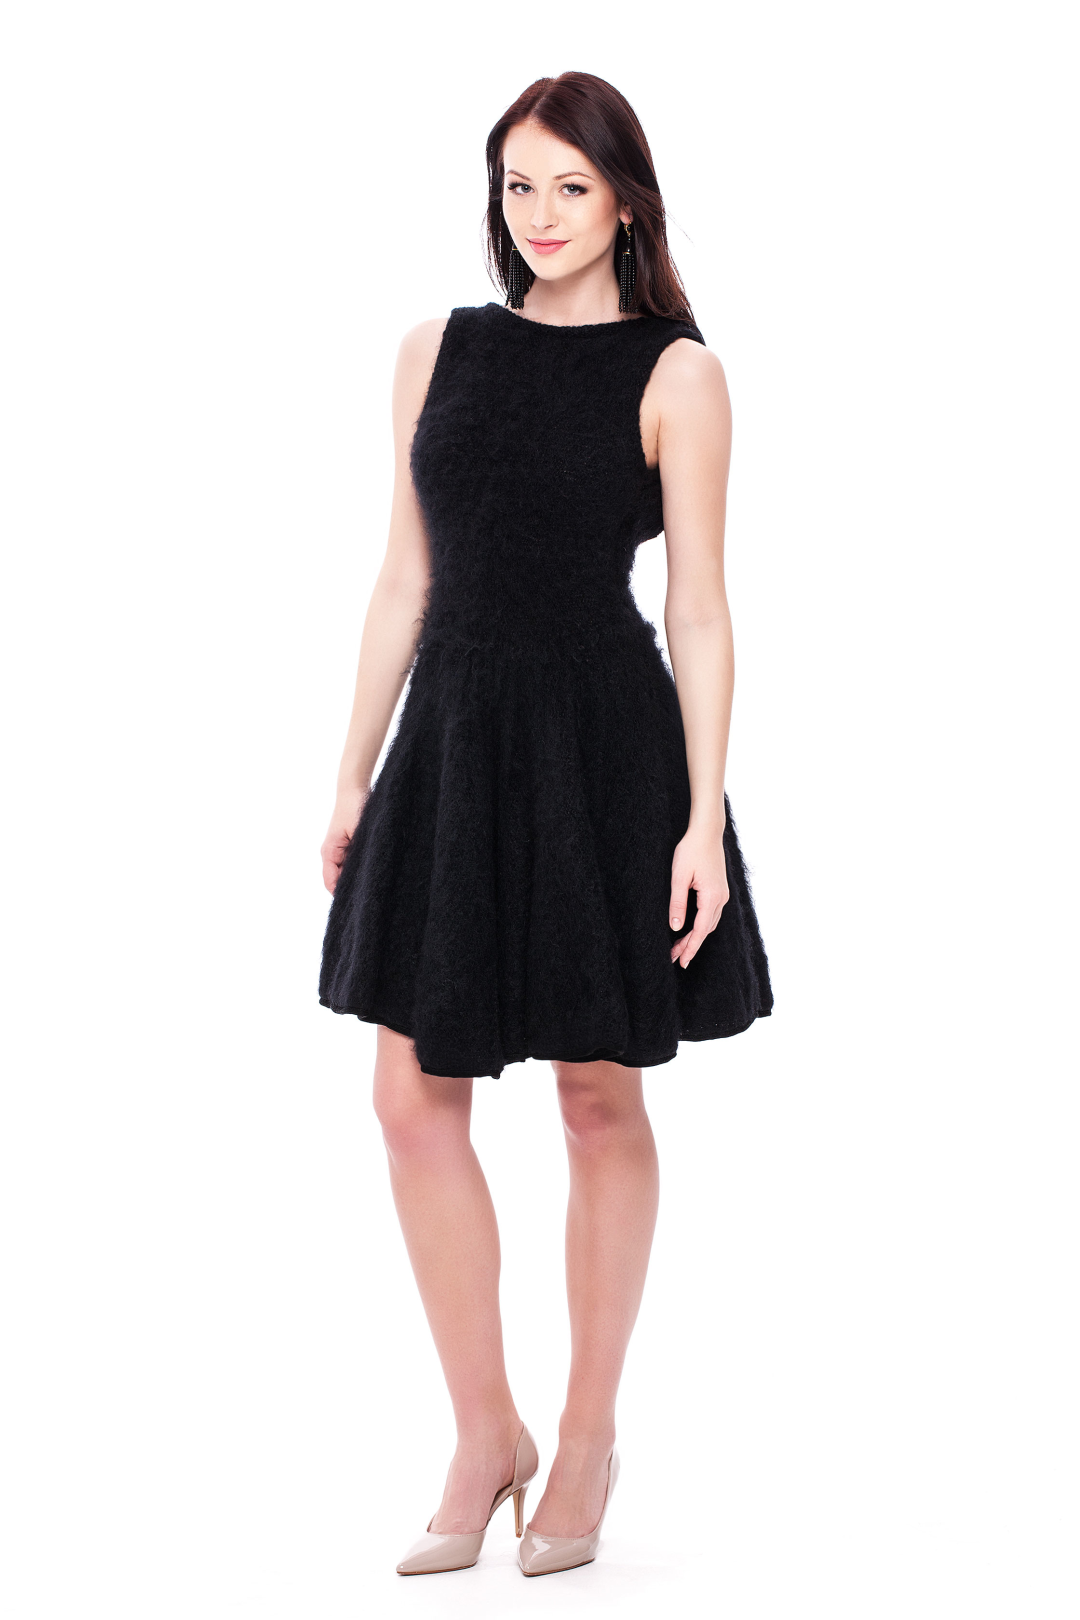 Buy Black Full Skirt Dress by Slate & Willow for $54 from Rent the Runway. Rent the Runway Rent the Runway MENU. Search Search. WAYS TO Black Full Skirt Dress. $54 to buy. $ value (7) Simple black dress with a black sheen material below the waist. The back of the dress gives it elegance and adds just enough to make it stand out!